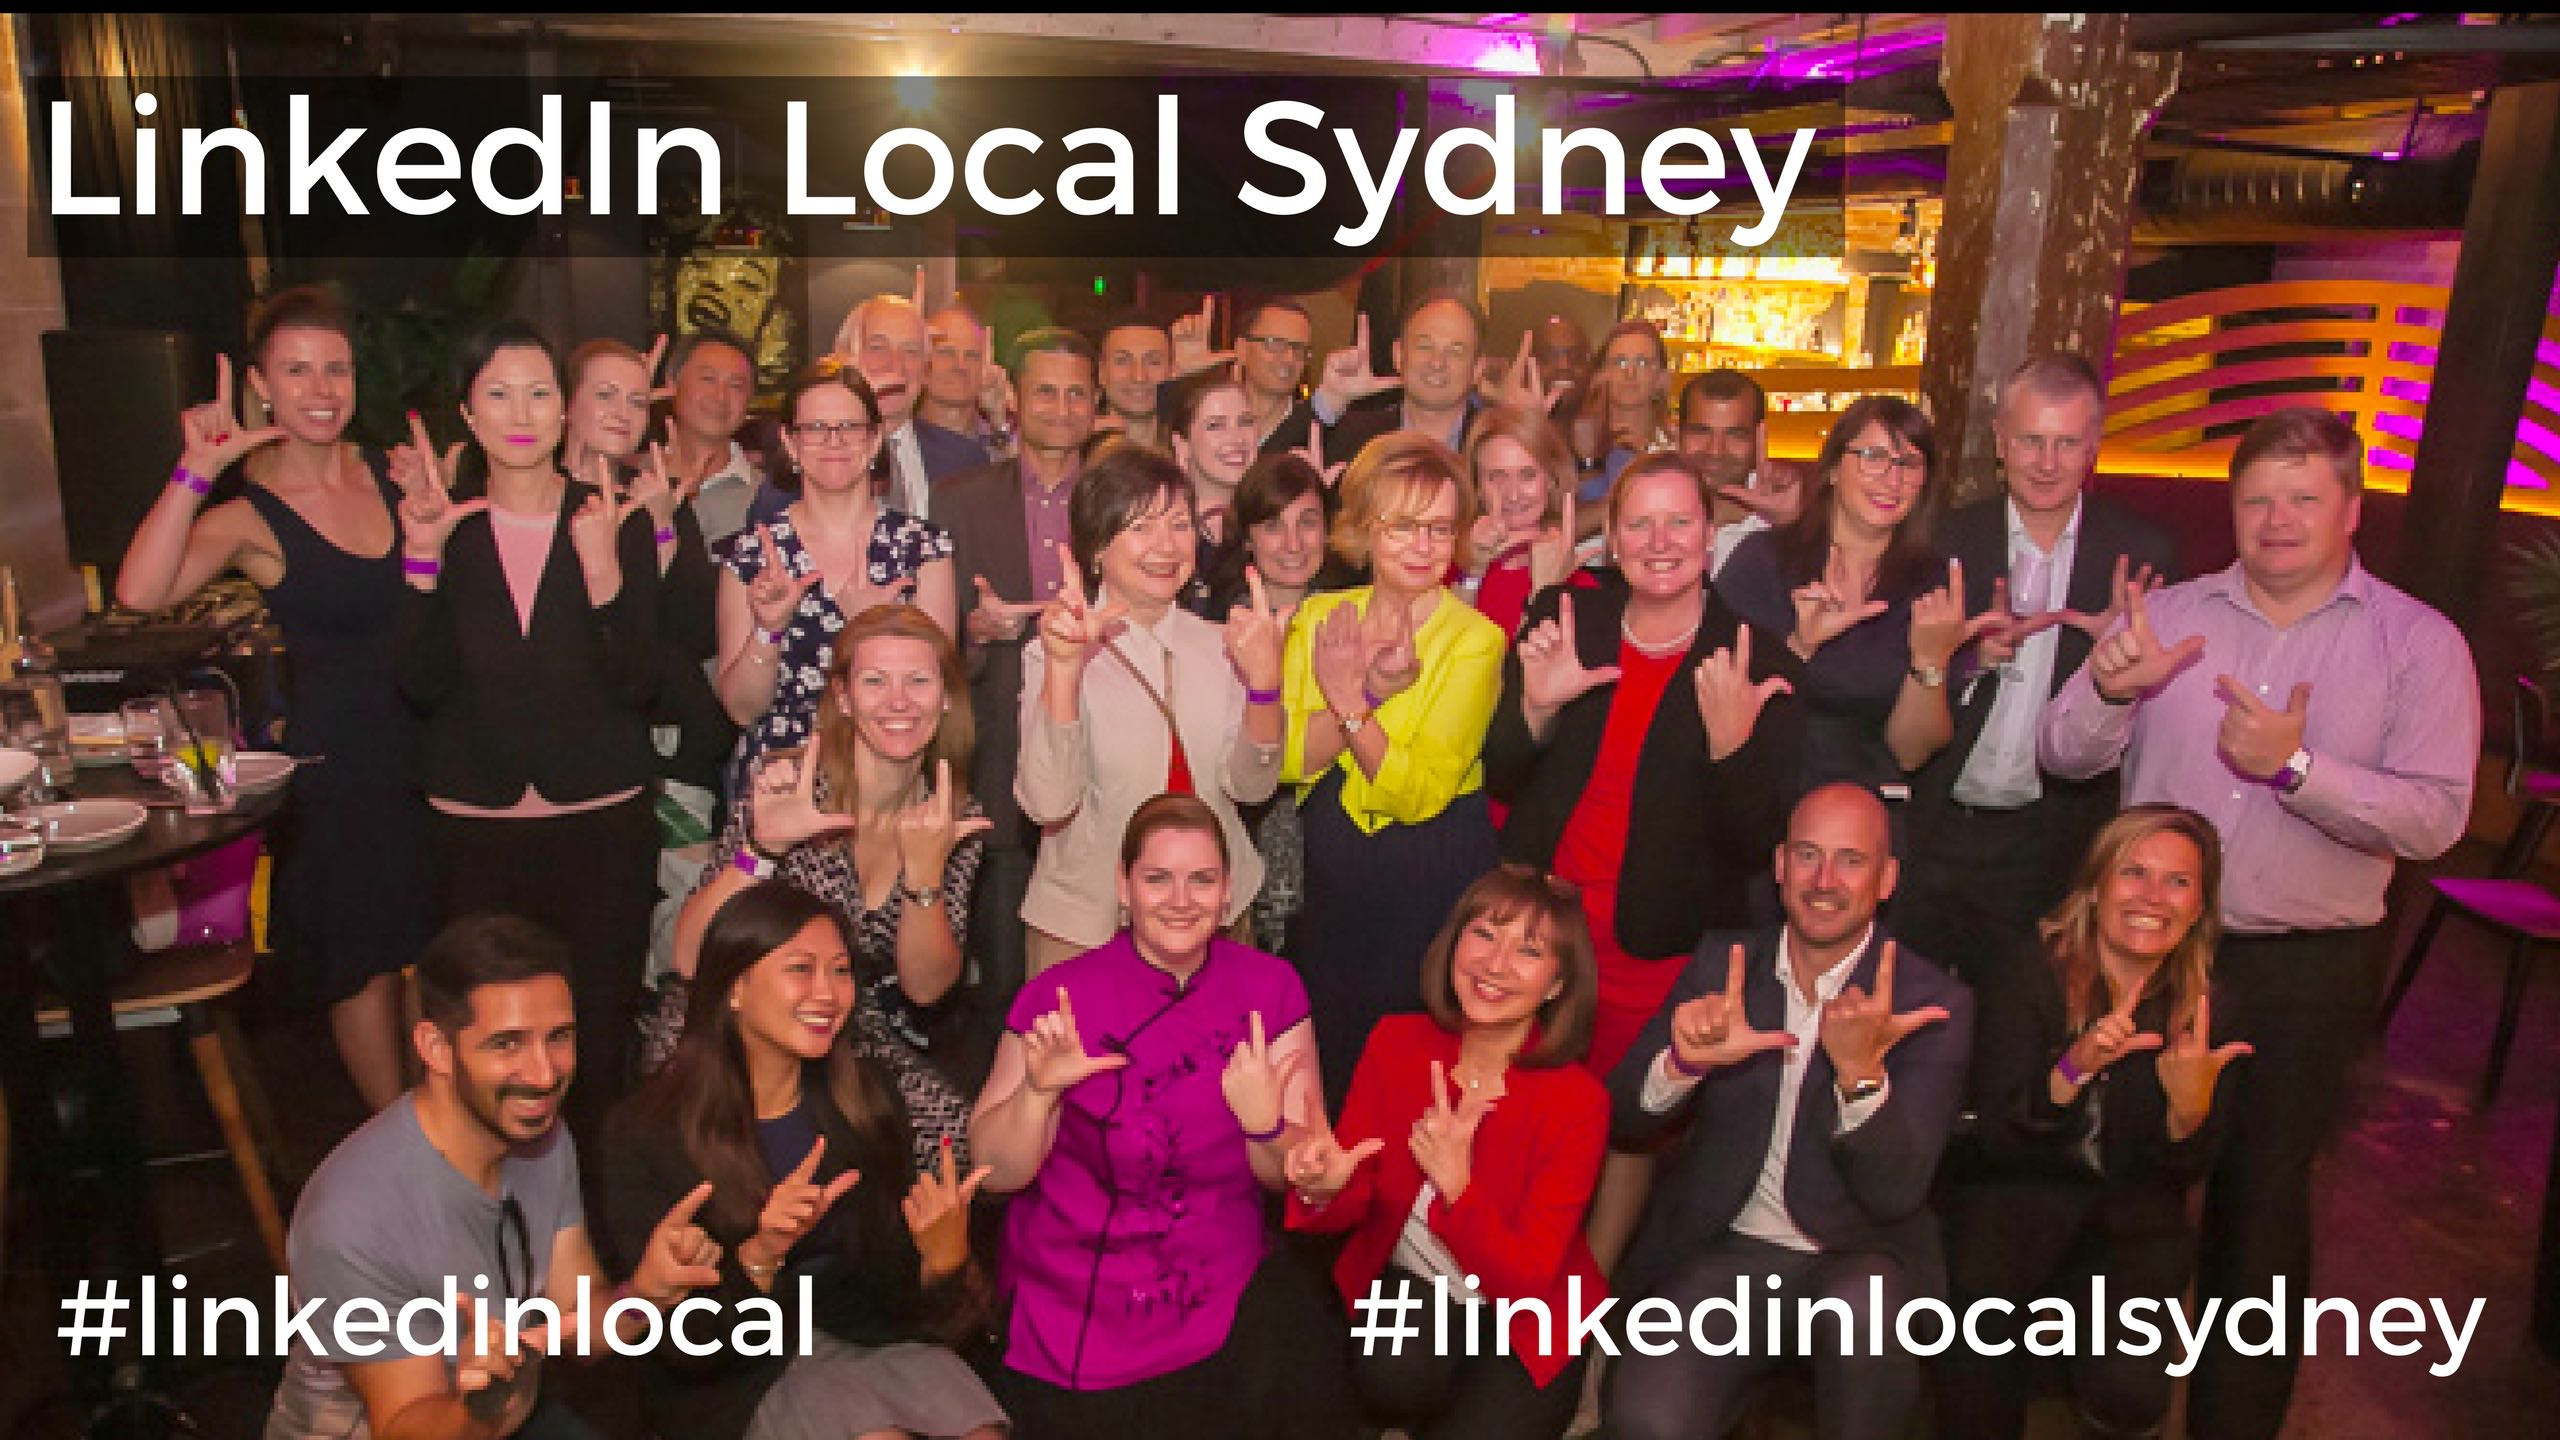 Linkedin Local Sydney